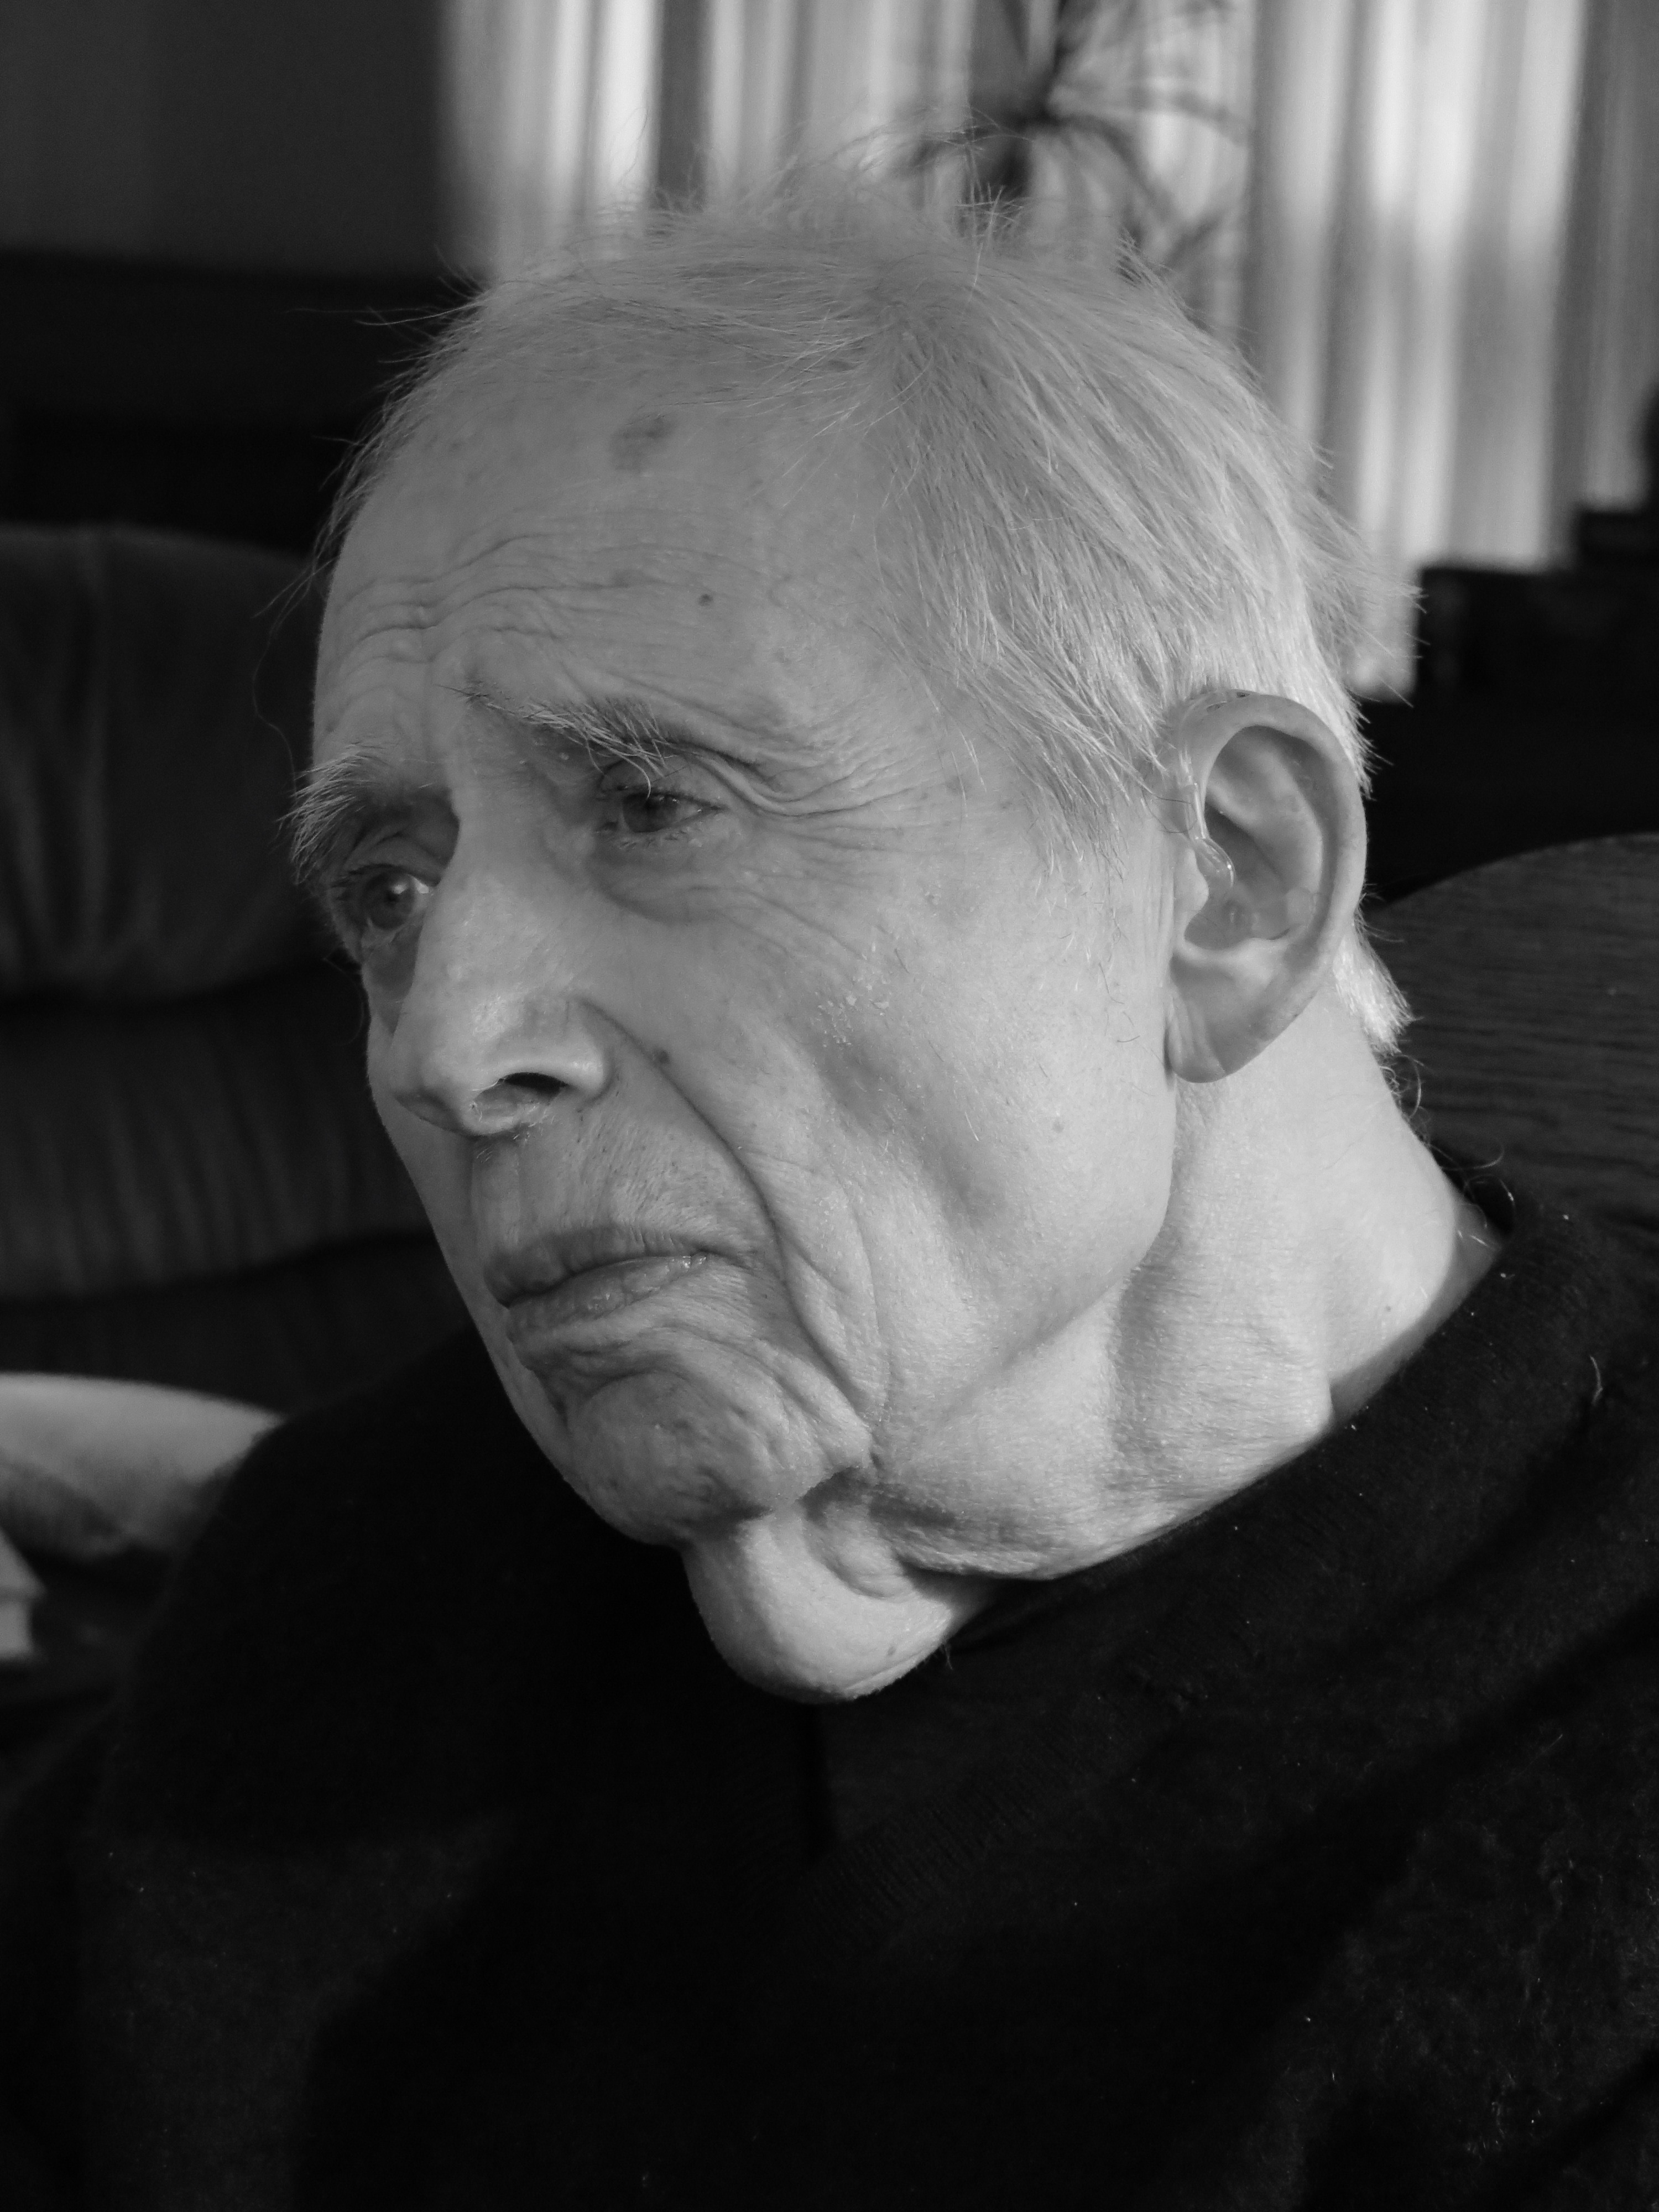 harold bloom essay hamlet And in a concluding essay, harold bloom meditates on the originality of along with an analysis of the characters hamlet and ophelia and in a concluding essay.